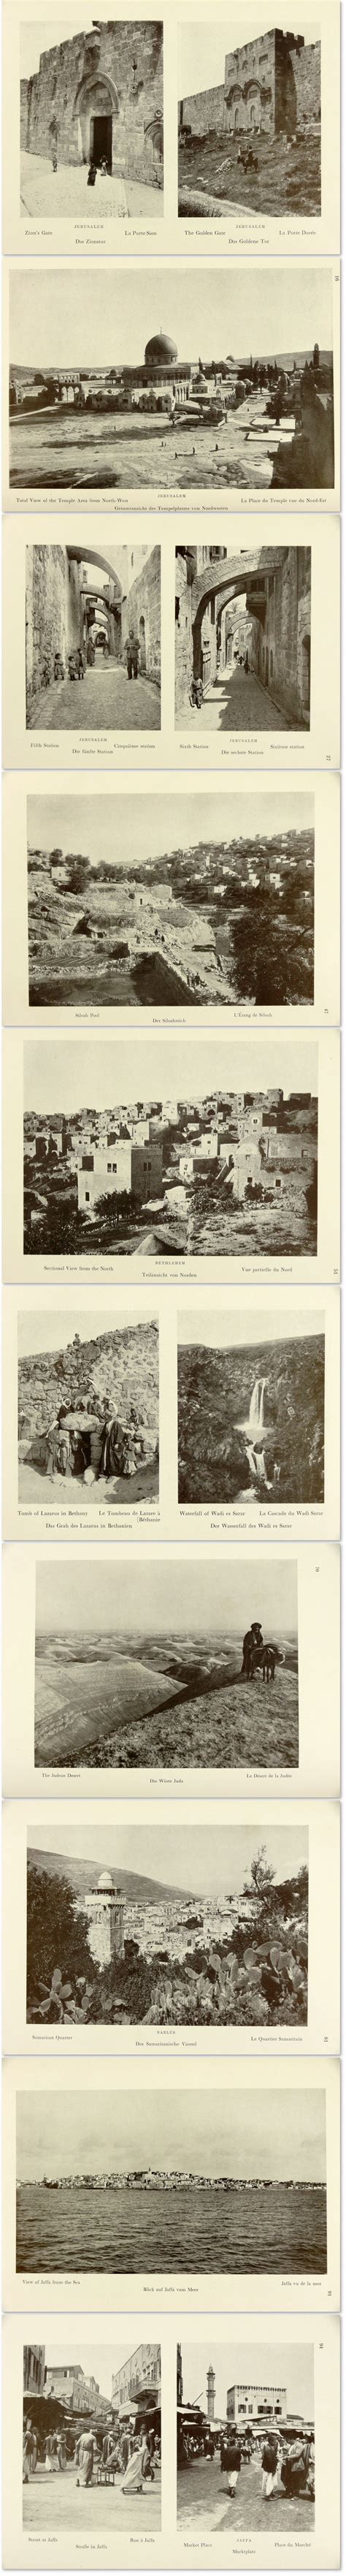 haifa or in modern palestine classic reprint books israel in the 1920s photo book w 300 pictures holy land